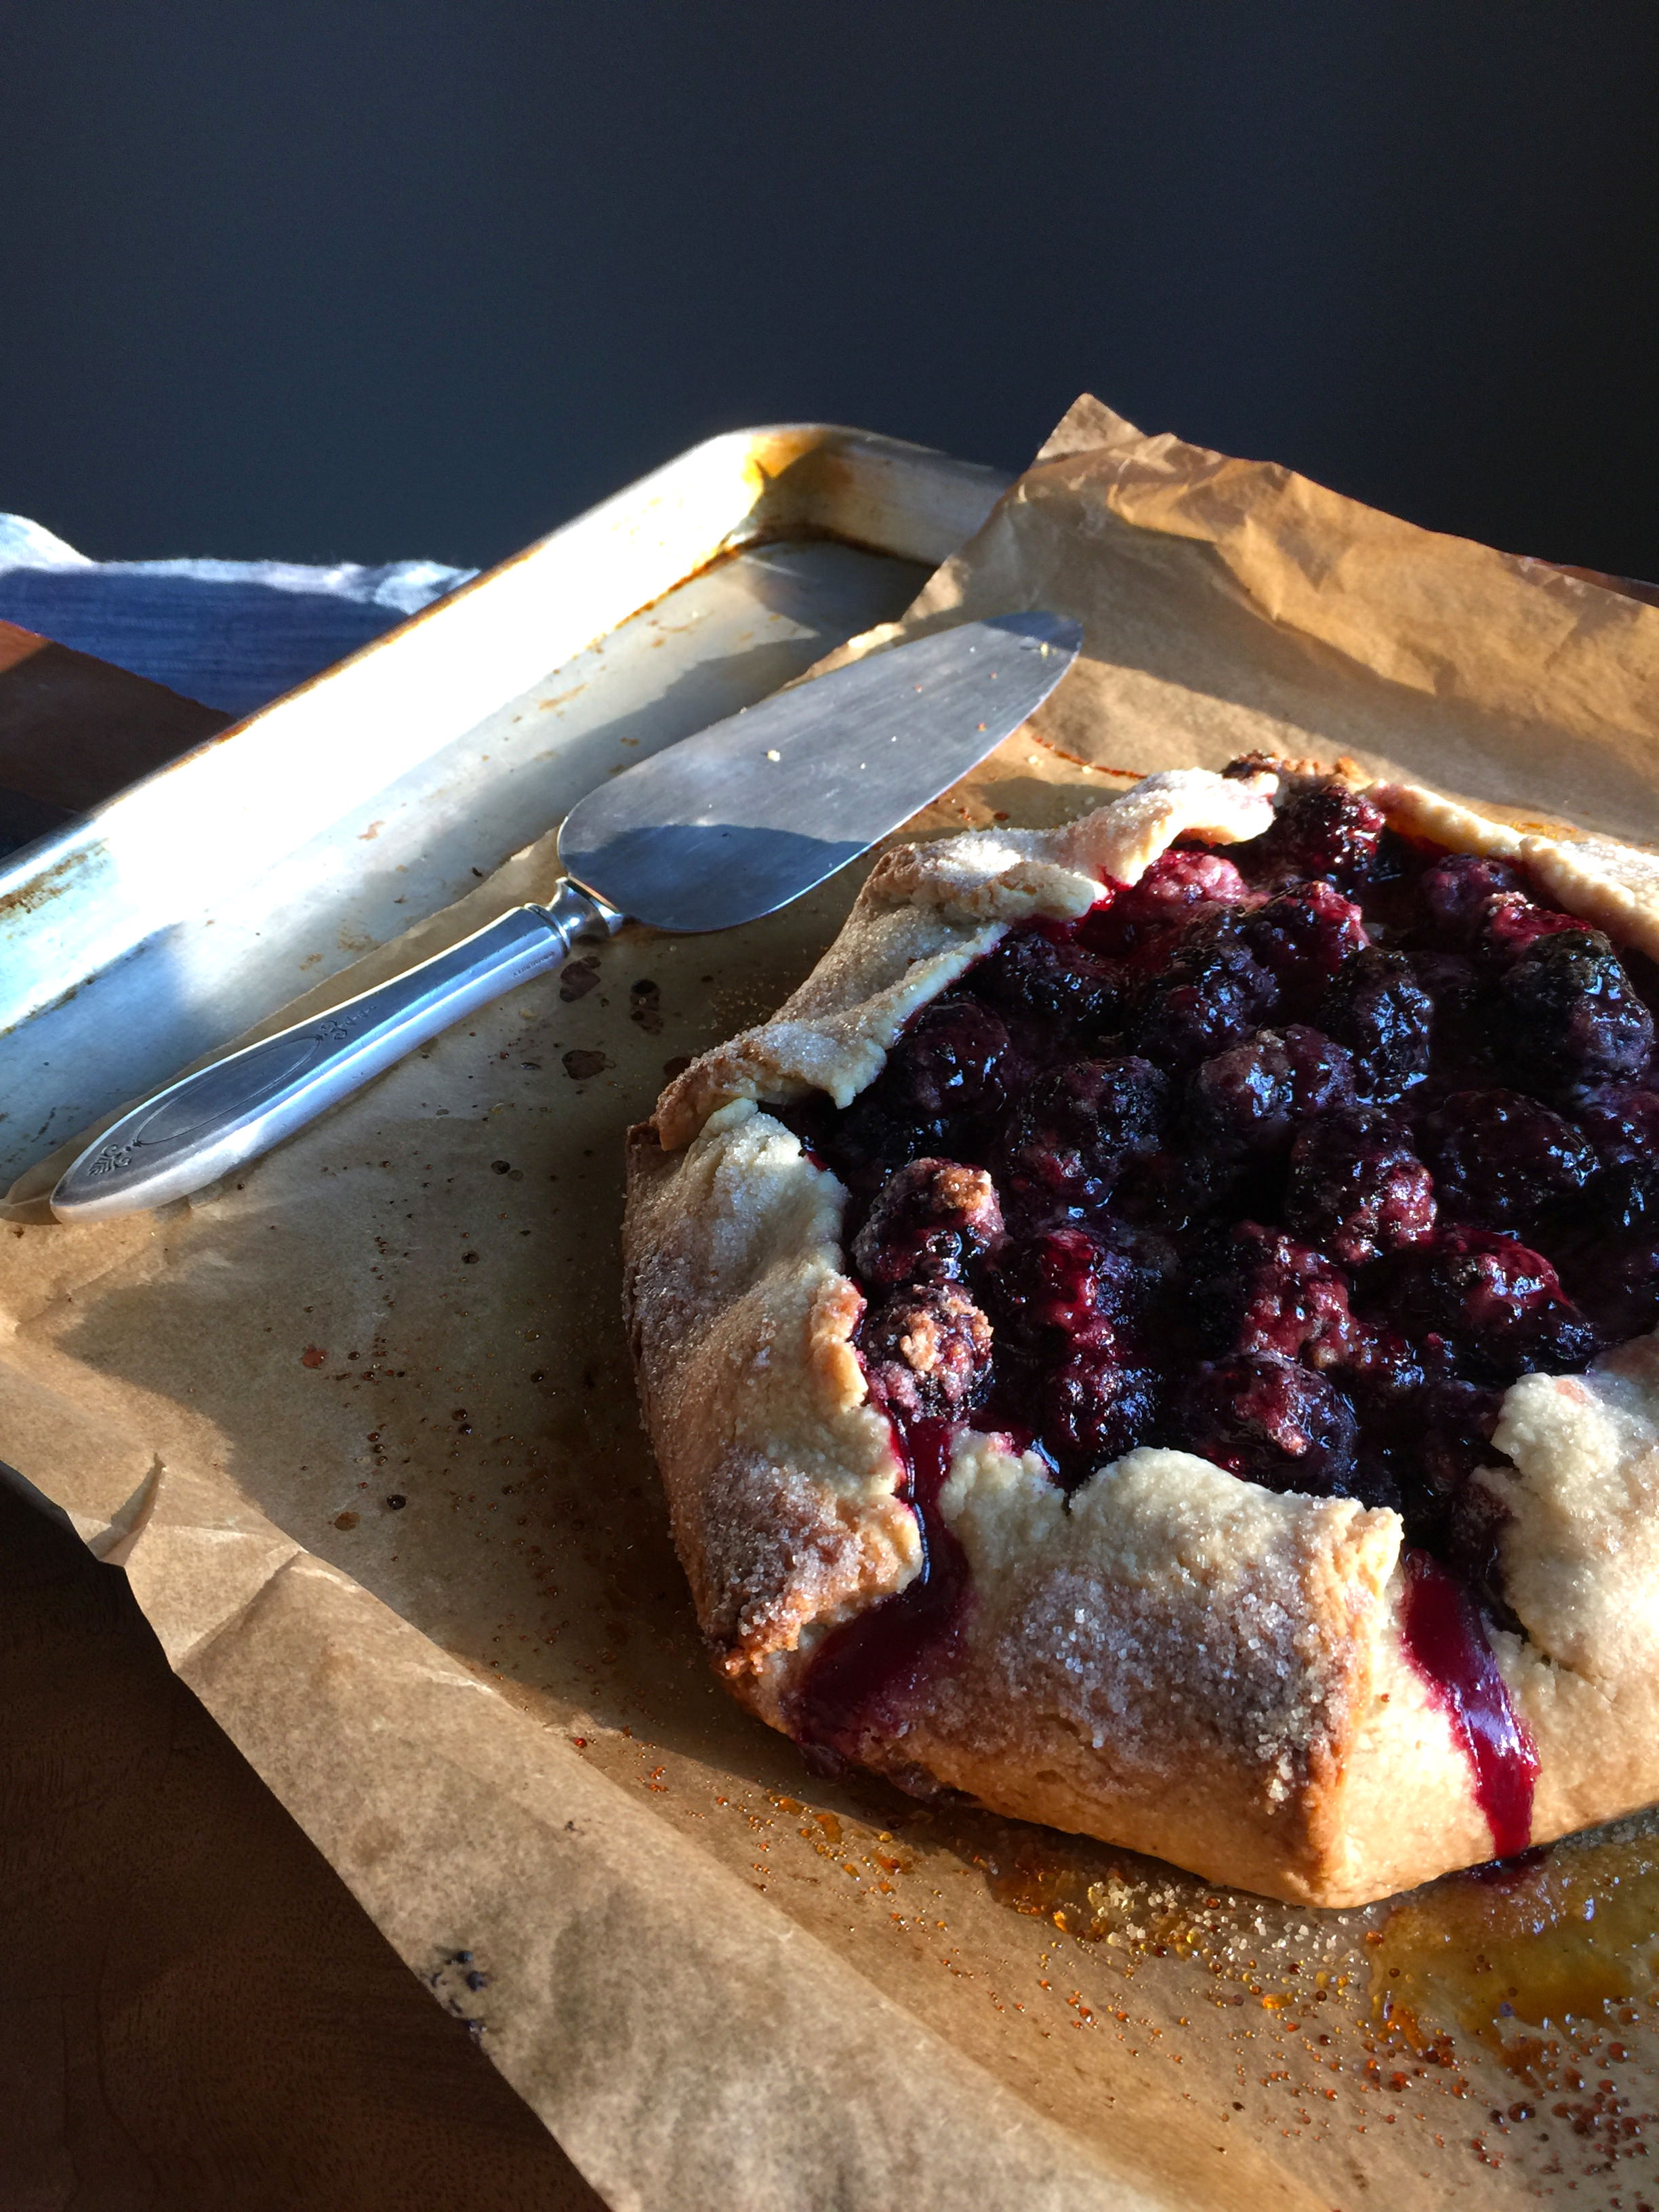 a galette/tart sitting on a baking sheet with a serving utinsil